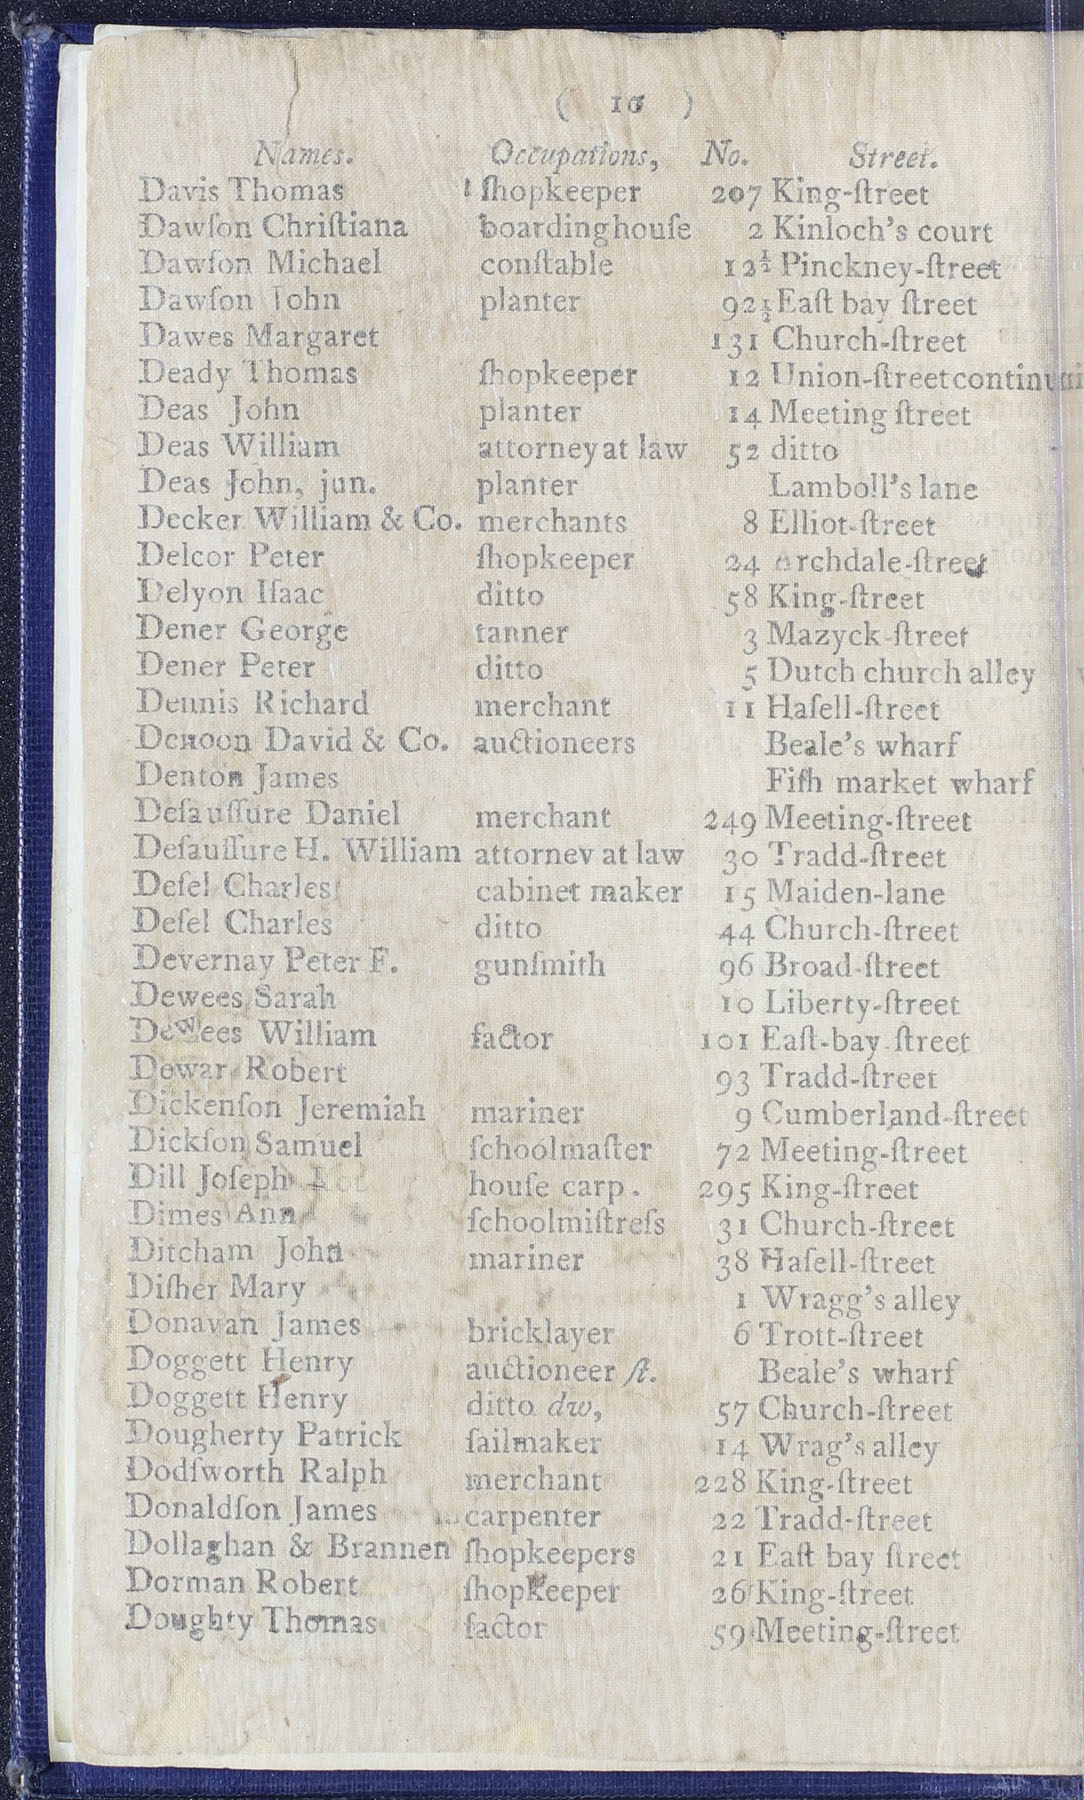 Charleston Directory 1790, Page 10